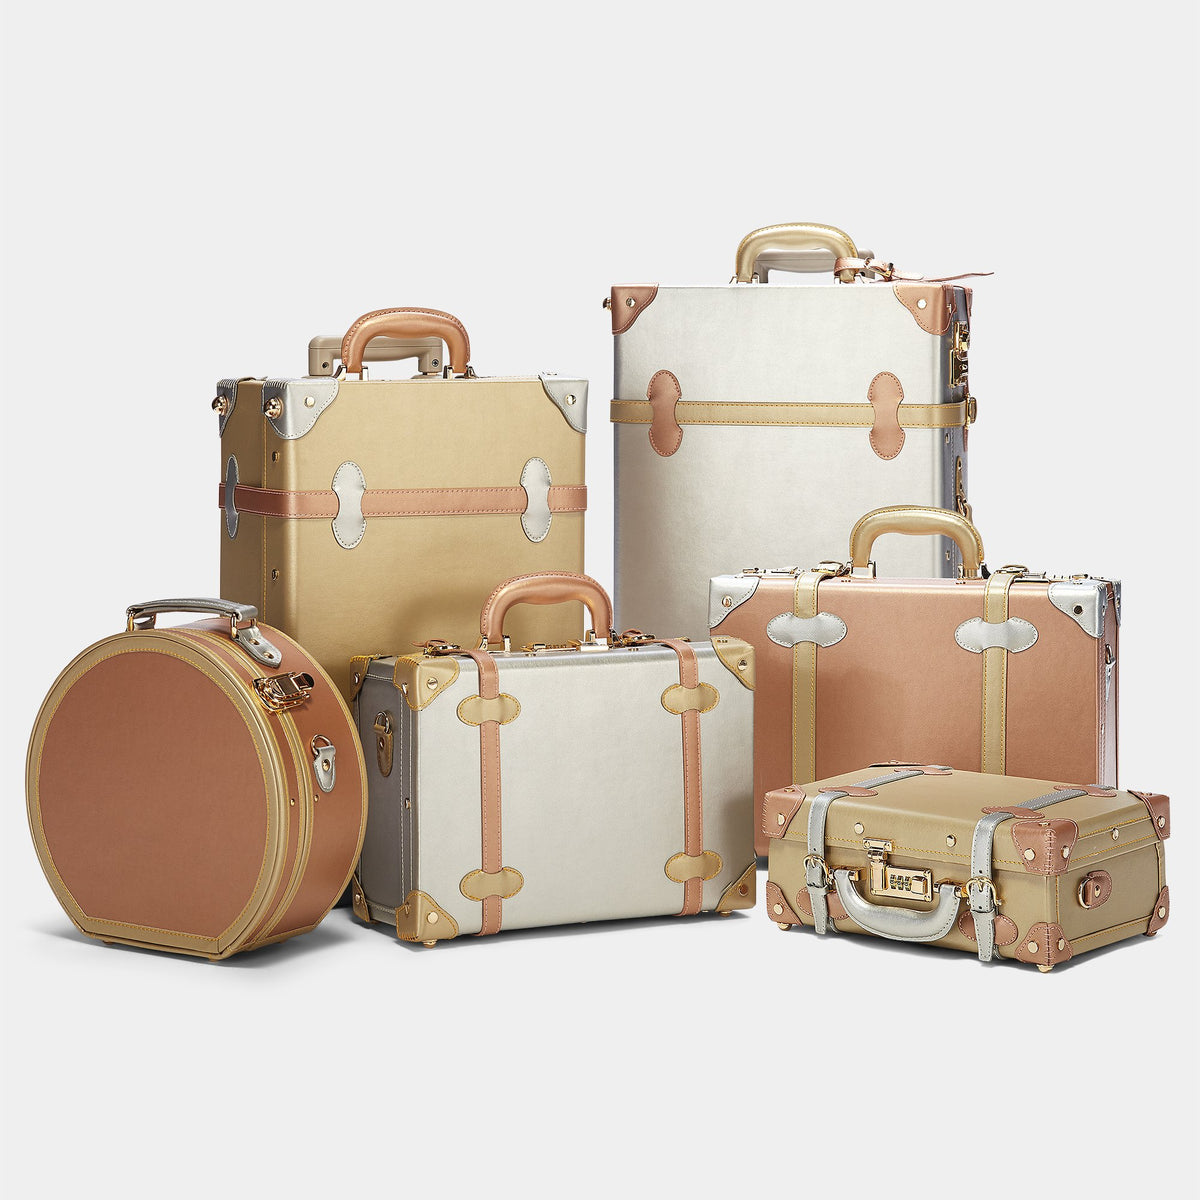 The Alchemist Small Hat Box - Hat Box Hand Luggage -  Hatbox Small with matching 5 cases side by side